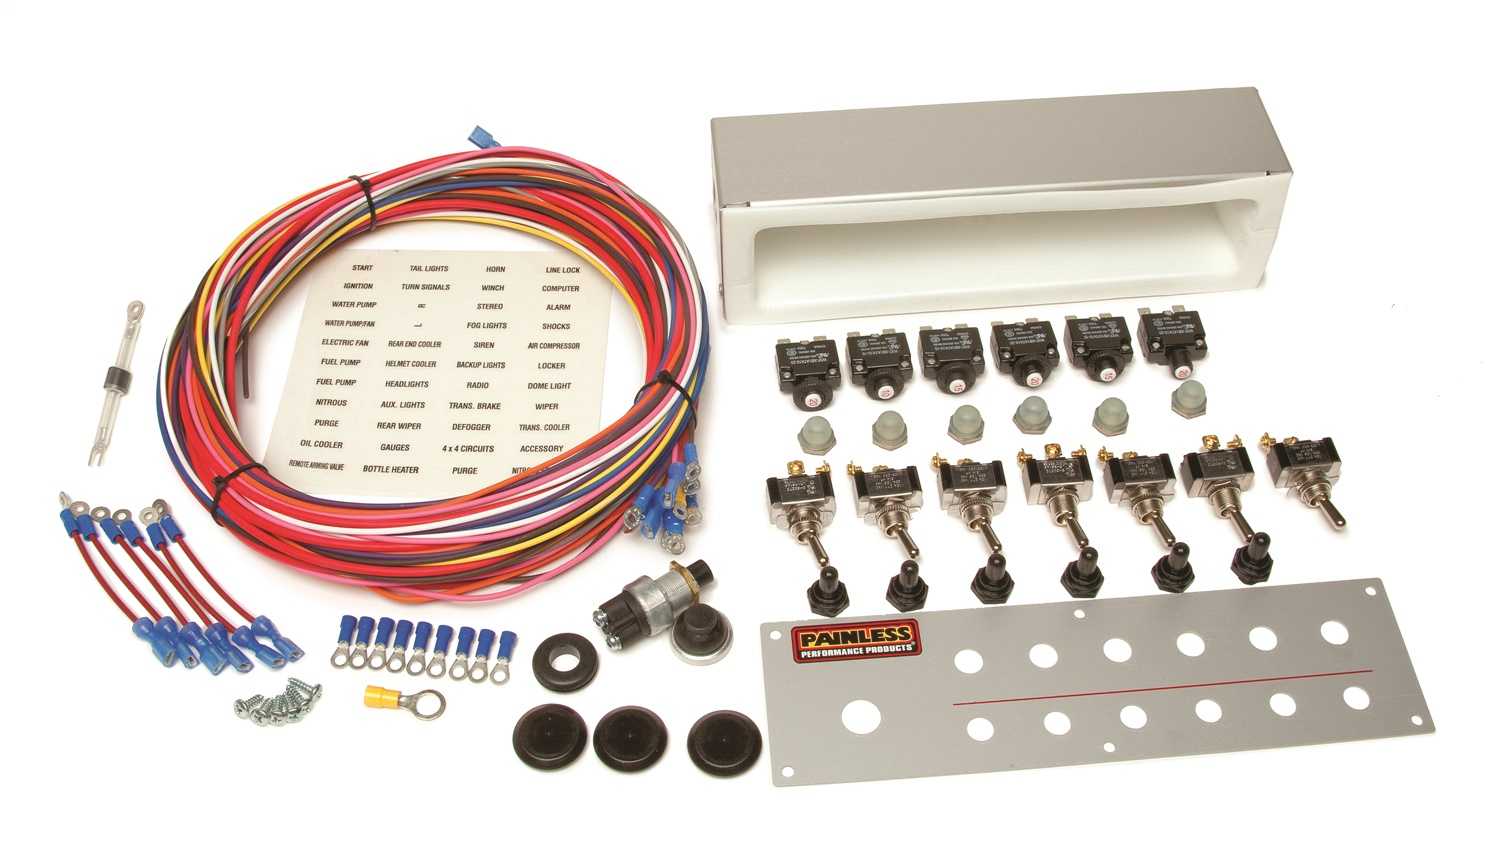 Painless Wiring 50337 Off-Road Toggle Switch Kit